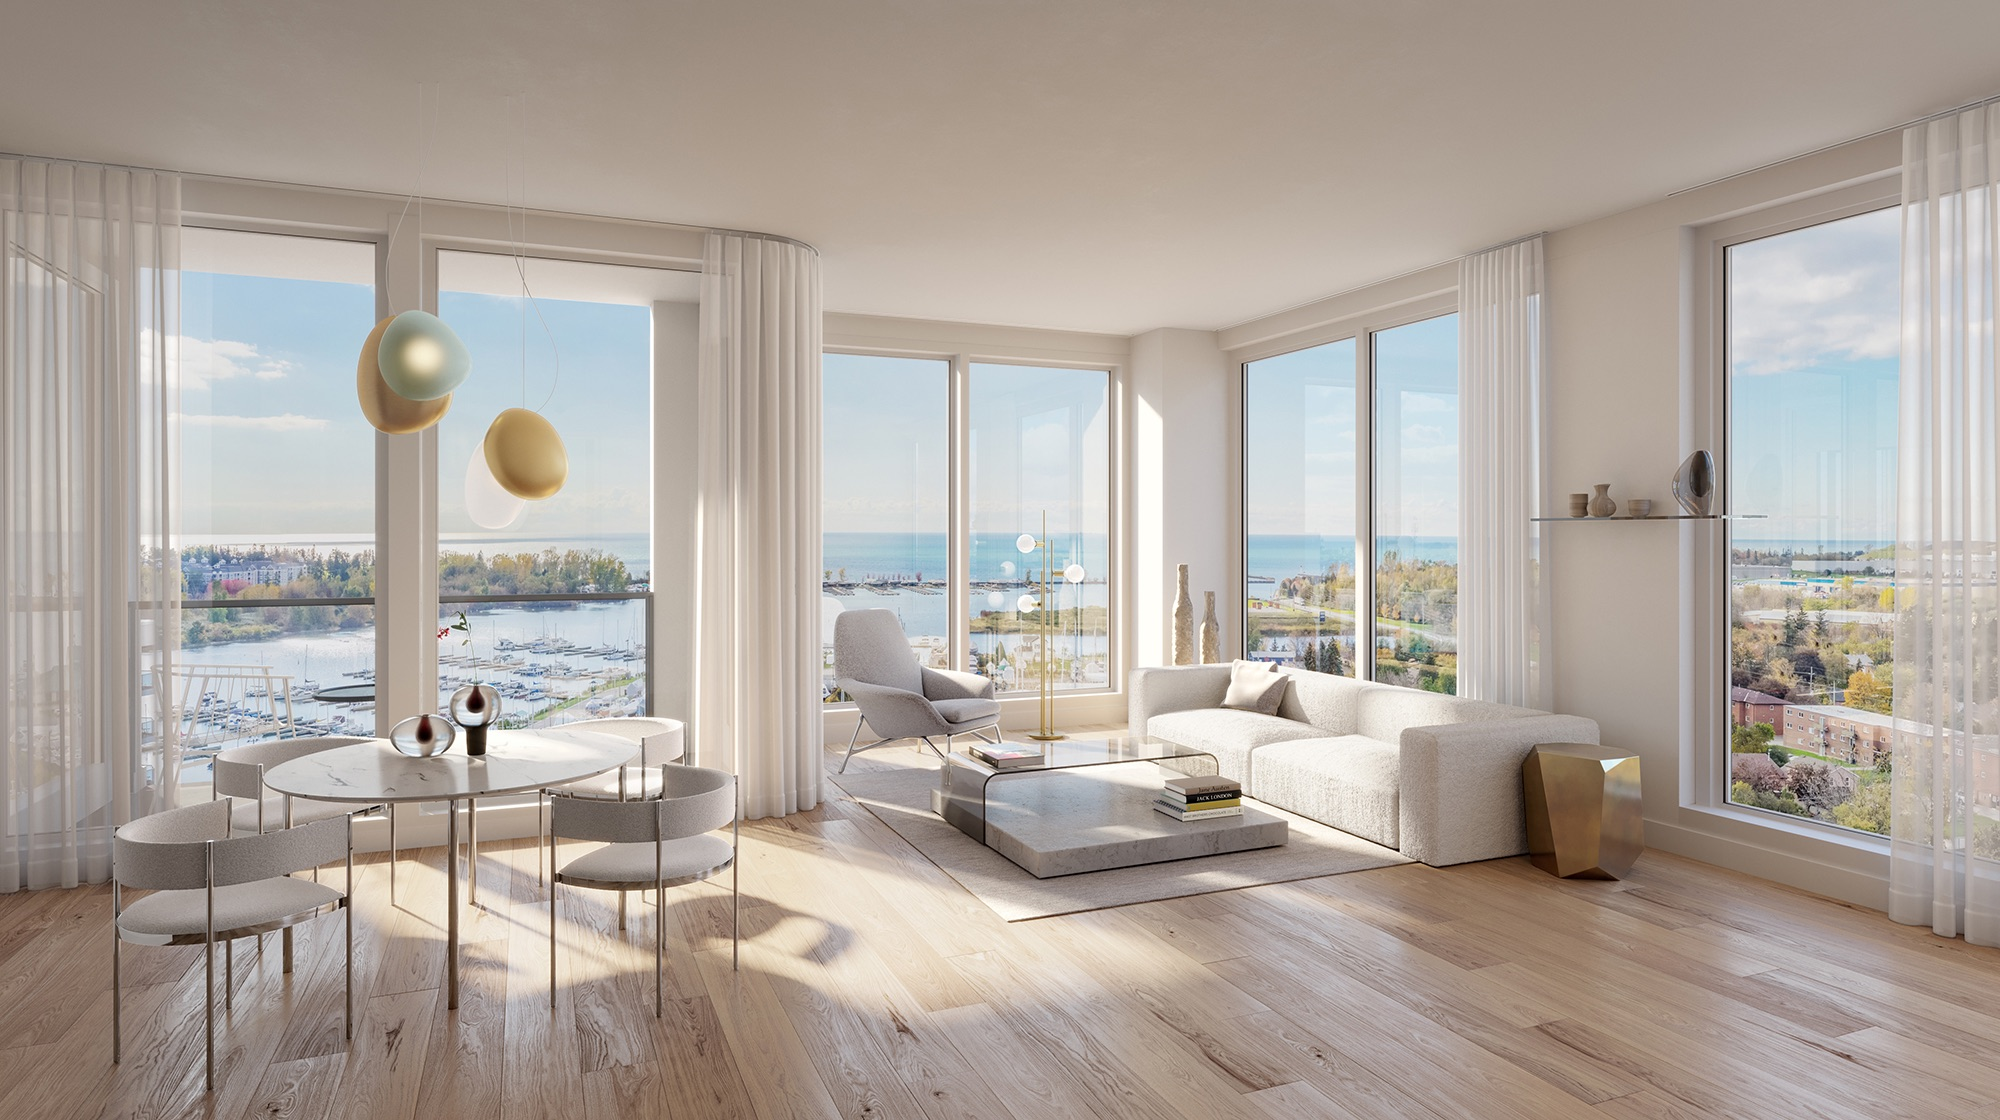 Rendering of Debut Waterfront Residences suite interior with waterfront views.